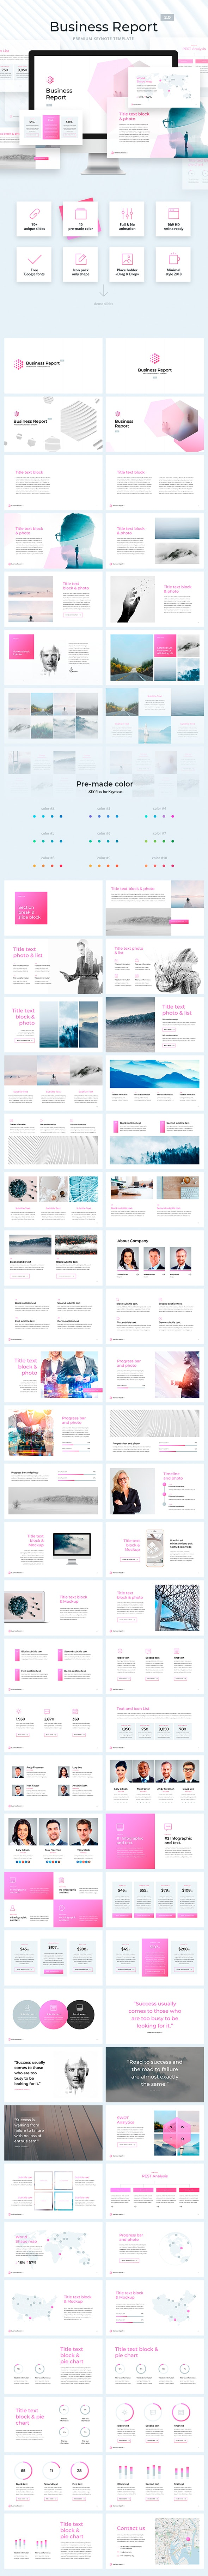 Business Report Template 2.0 for Keynote - Business Keynote Templates